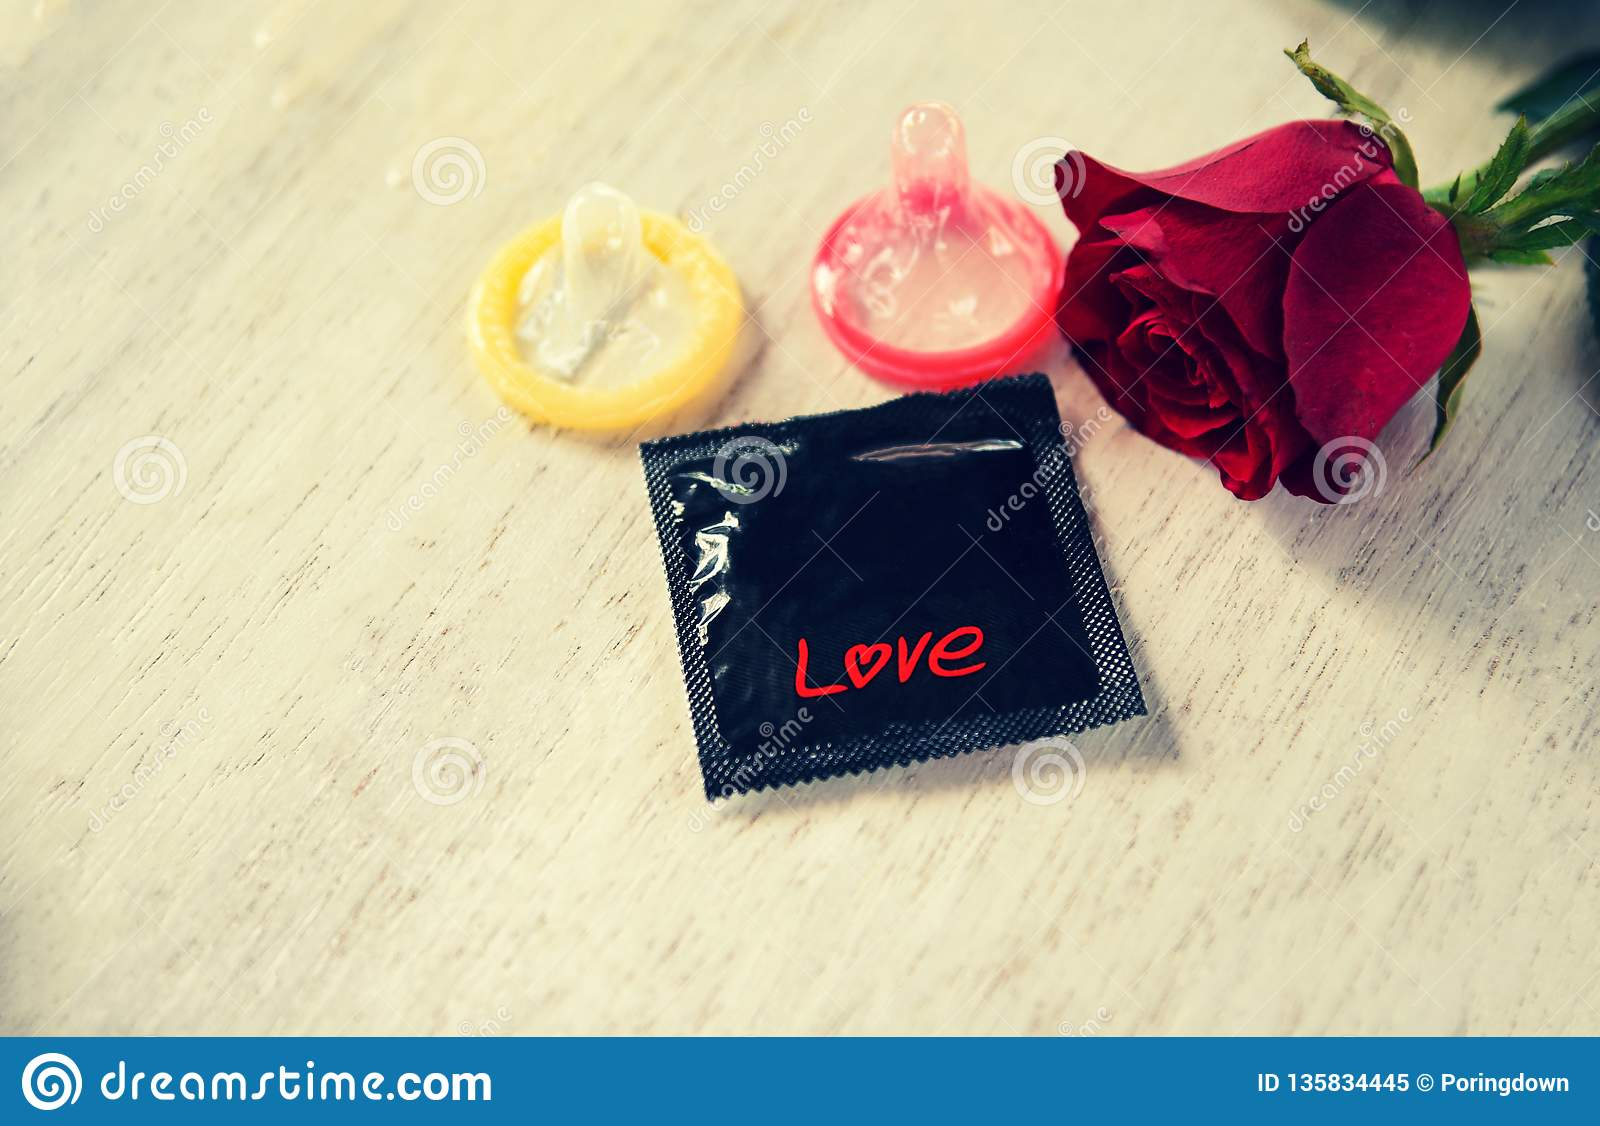 Condom Prevent Pregnancy Contraception Valentines safe sex concept pregnancy or sexually transmitted disease